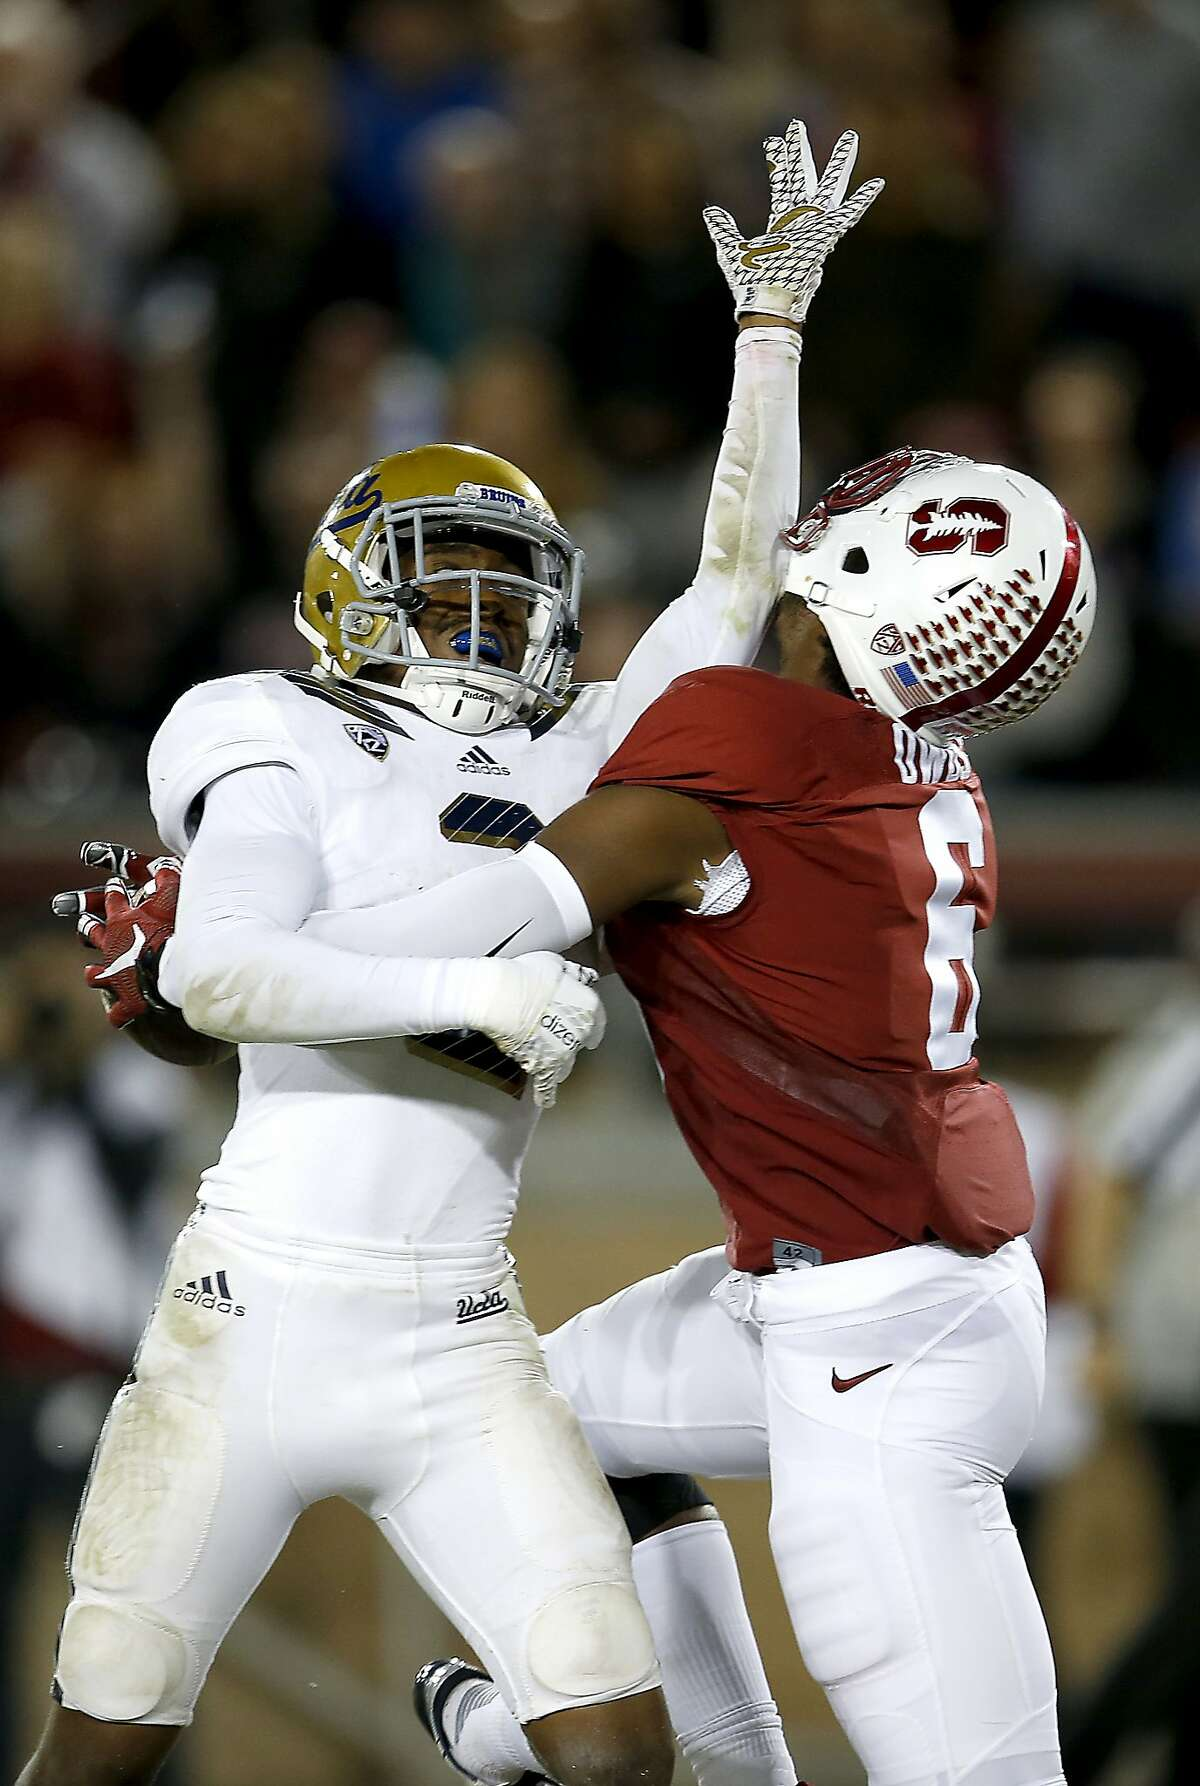 Stanford wide receiver Francis Owusu (6) catches a touchdown pass behind the back of UCLA defensive back Jaleel Wadood during the second half of an NCAA college football game Thursday, Oct. 15, 2015, Stanford, Calif.